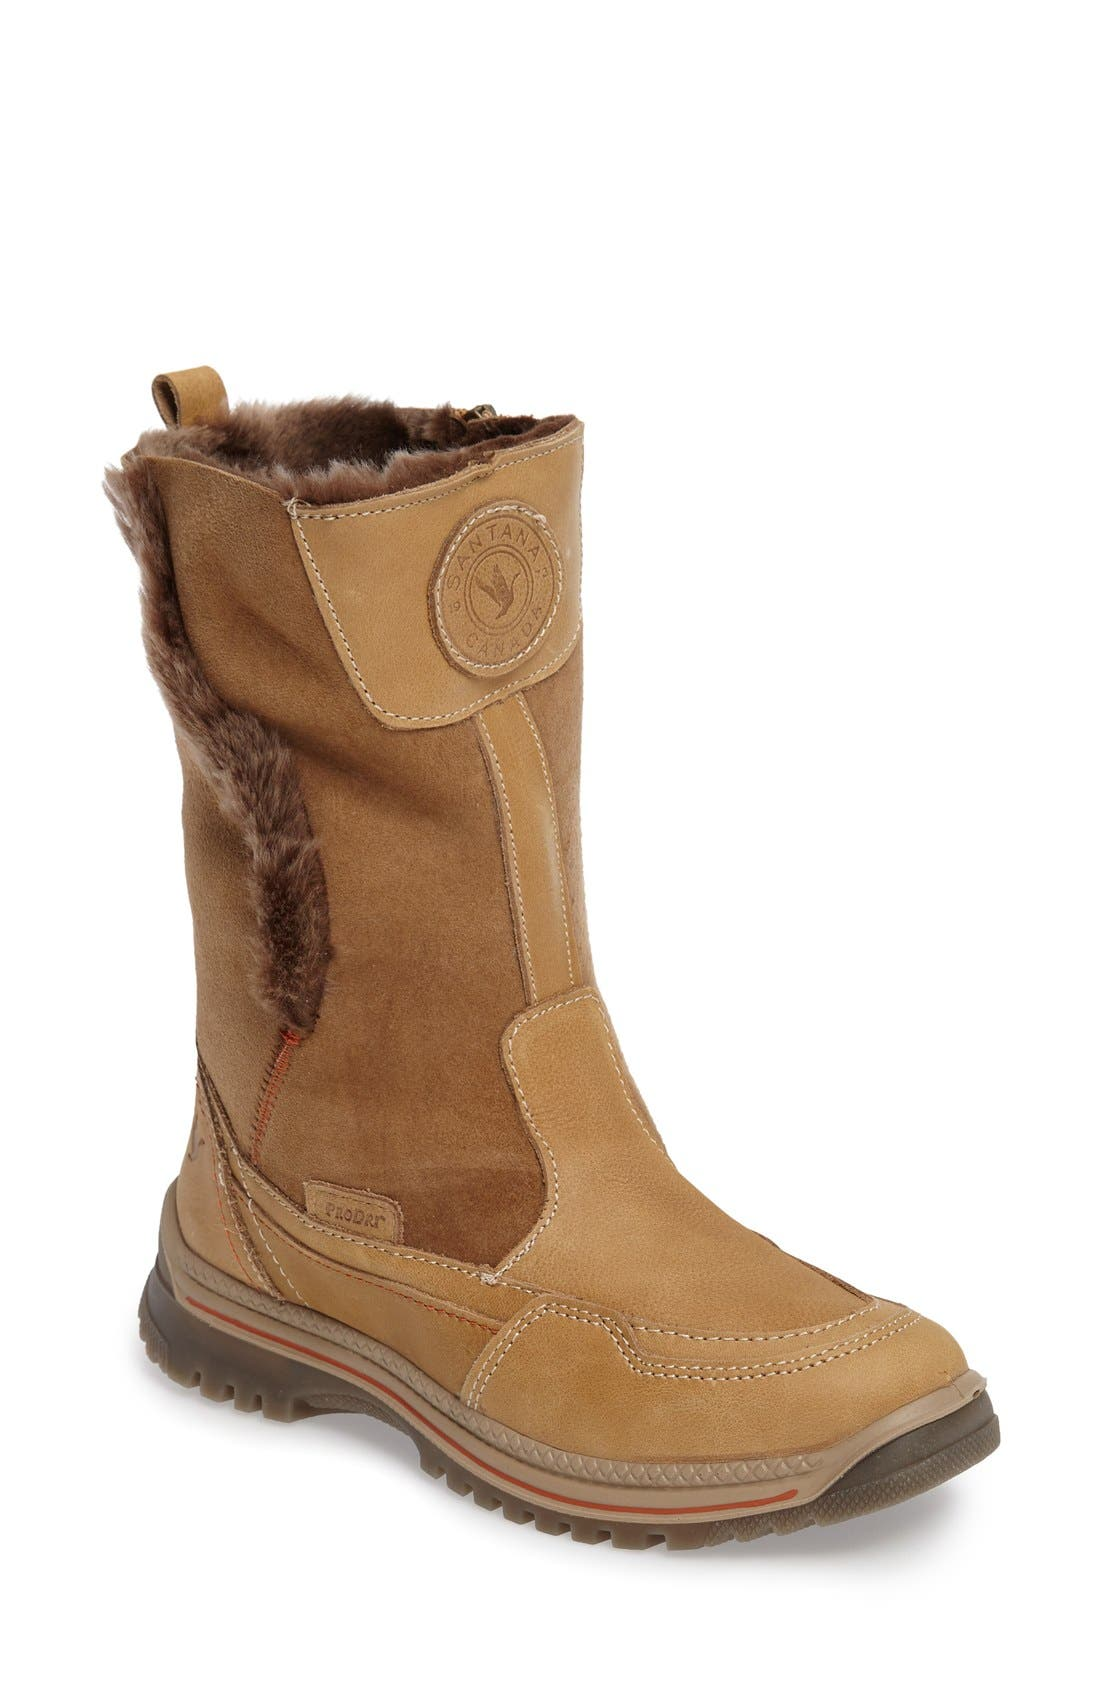 Seraphine Genuine Shearling Waterproof Winter Boot,                         Main,                         color, Camel Leather